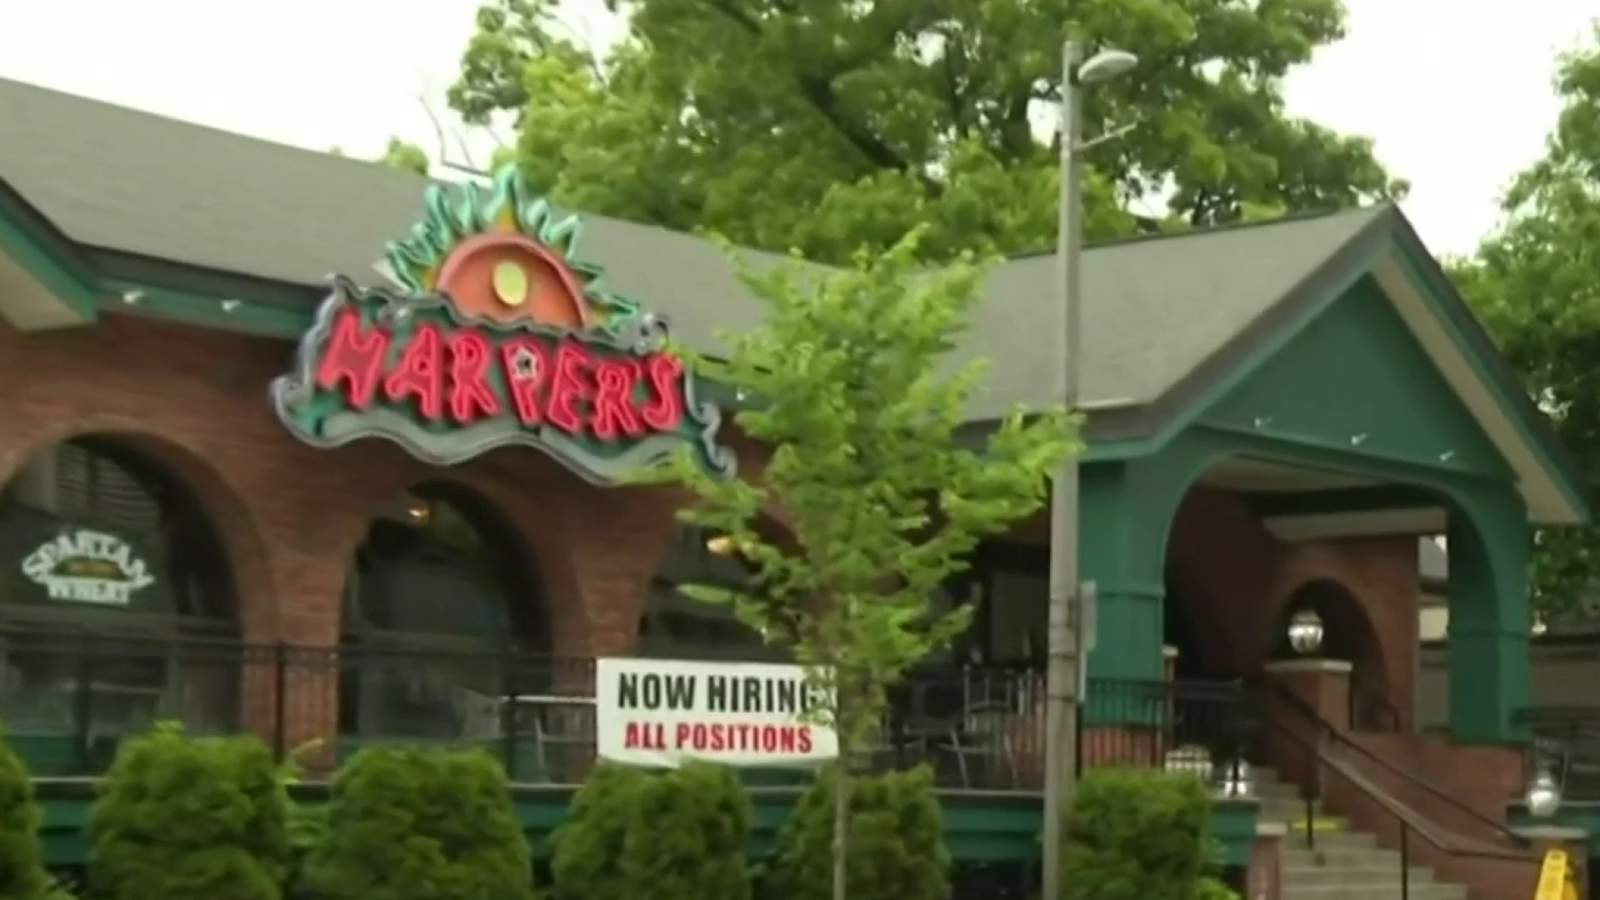 51 coronavirus (COVID-19) instances now linked to outbreak at East Lansing bar - WDIV Click onOnDetroit thumbnail